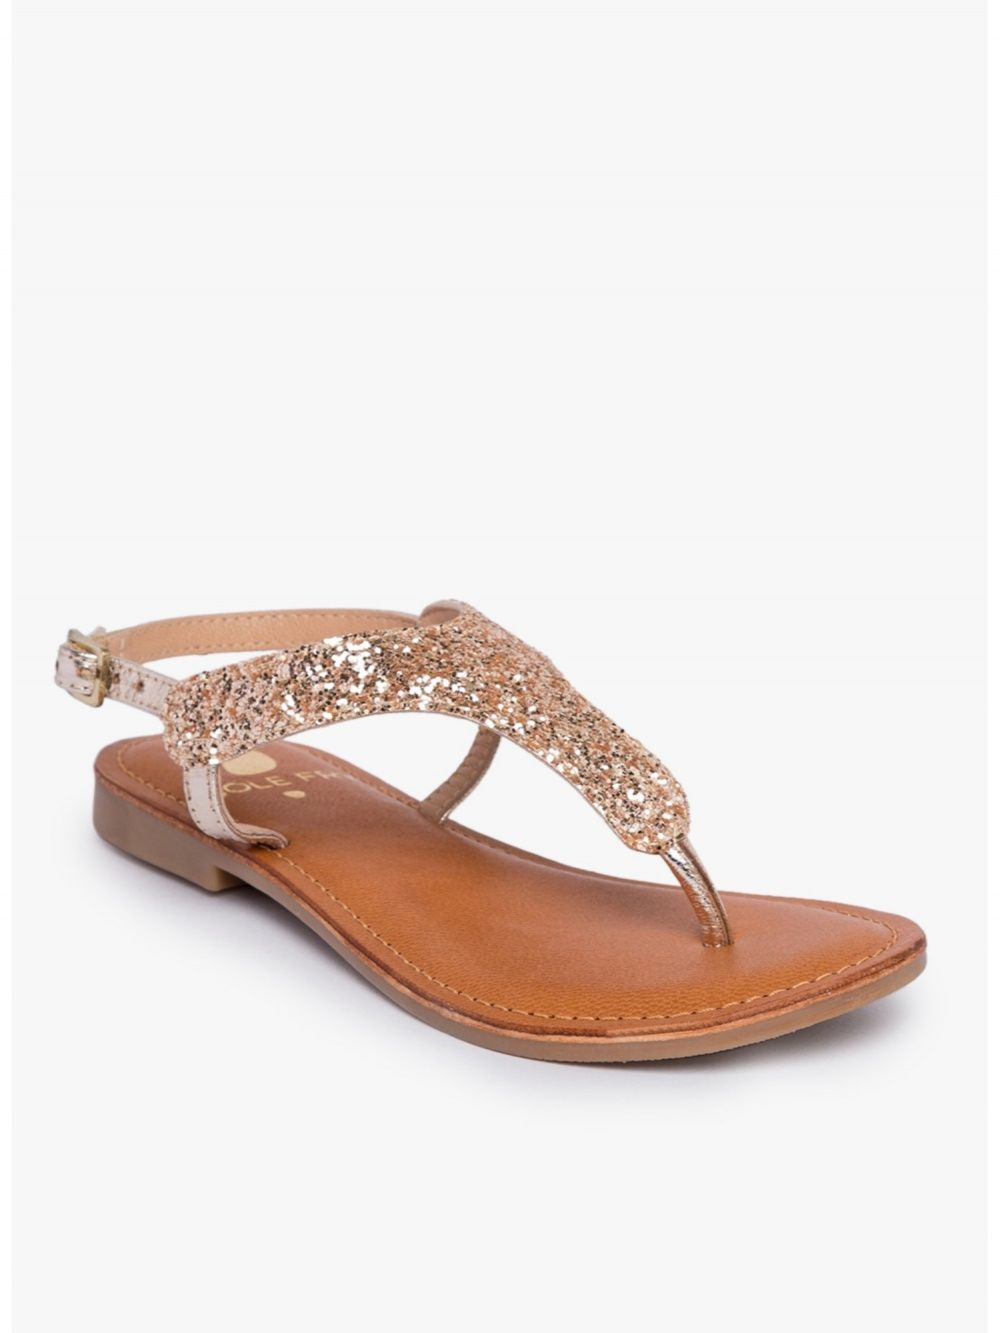 628eb2fa5 Sole Fry Flats : Buy Sole Fry Carrie Gold Flats Online | Nykaa Fashion.